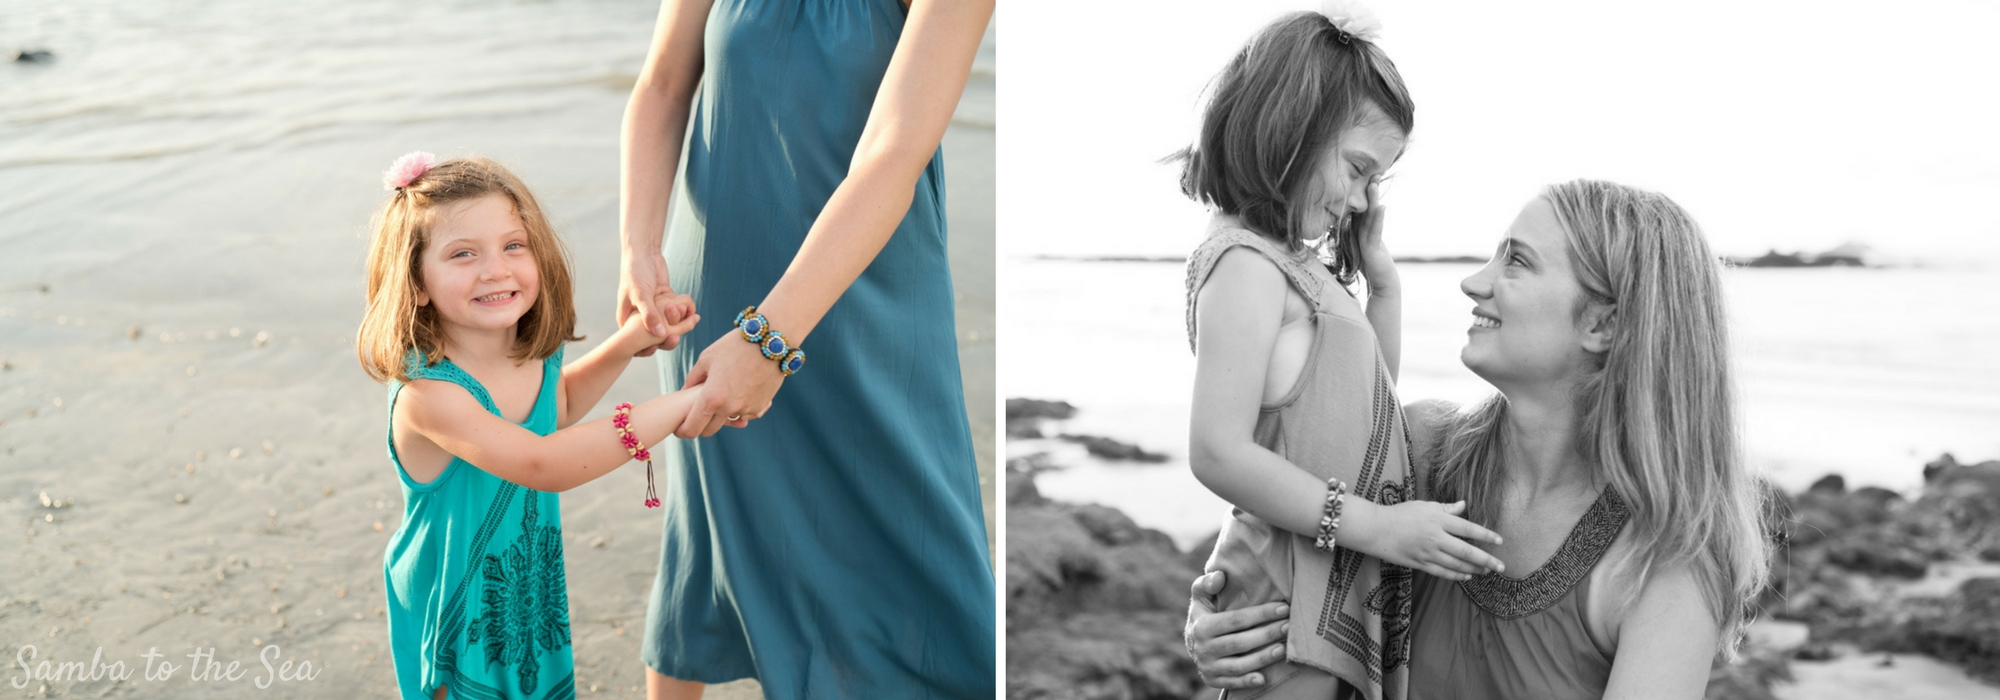 Young daughter and her mom sharing beautiful moments during family photos in Costa Rica. Photographed by Kristen M. Brown, Samba to the Sea Photography.